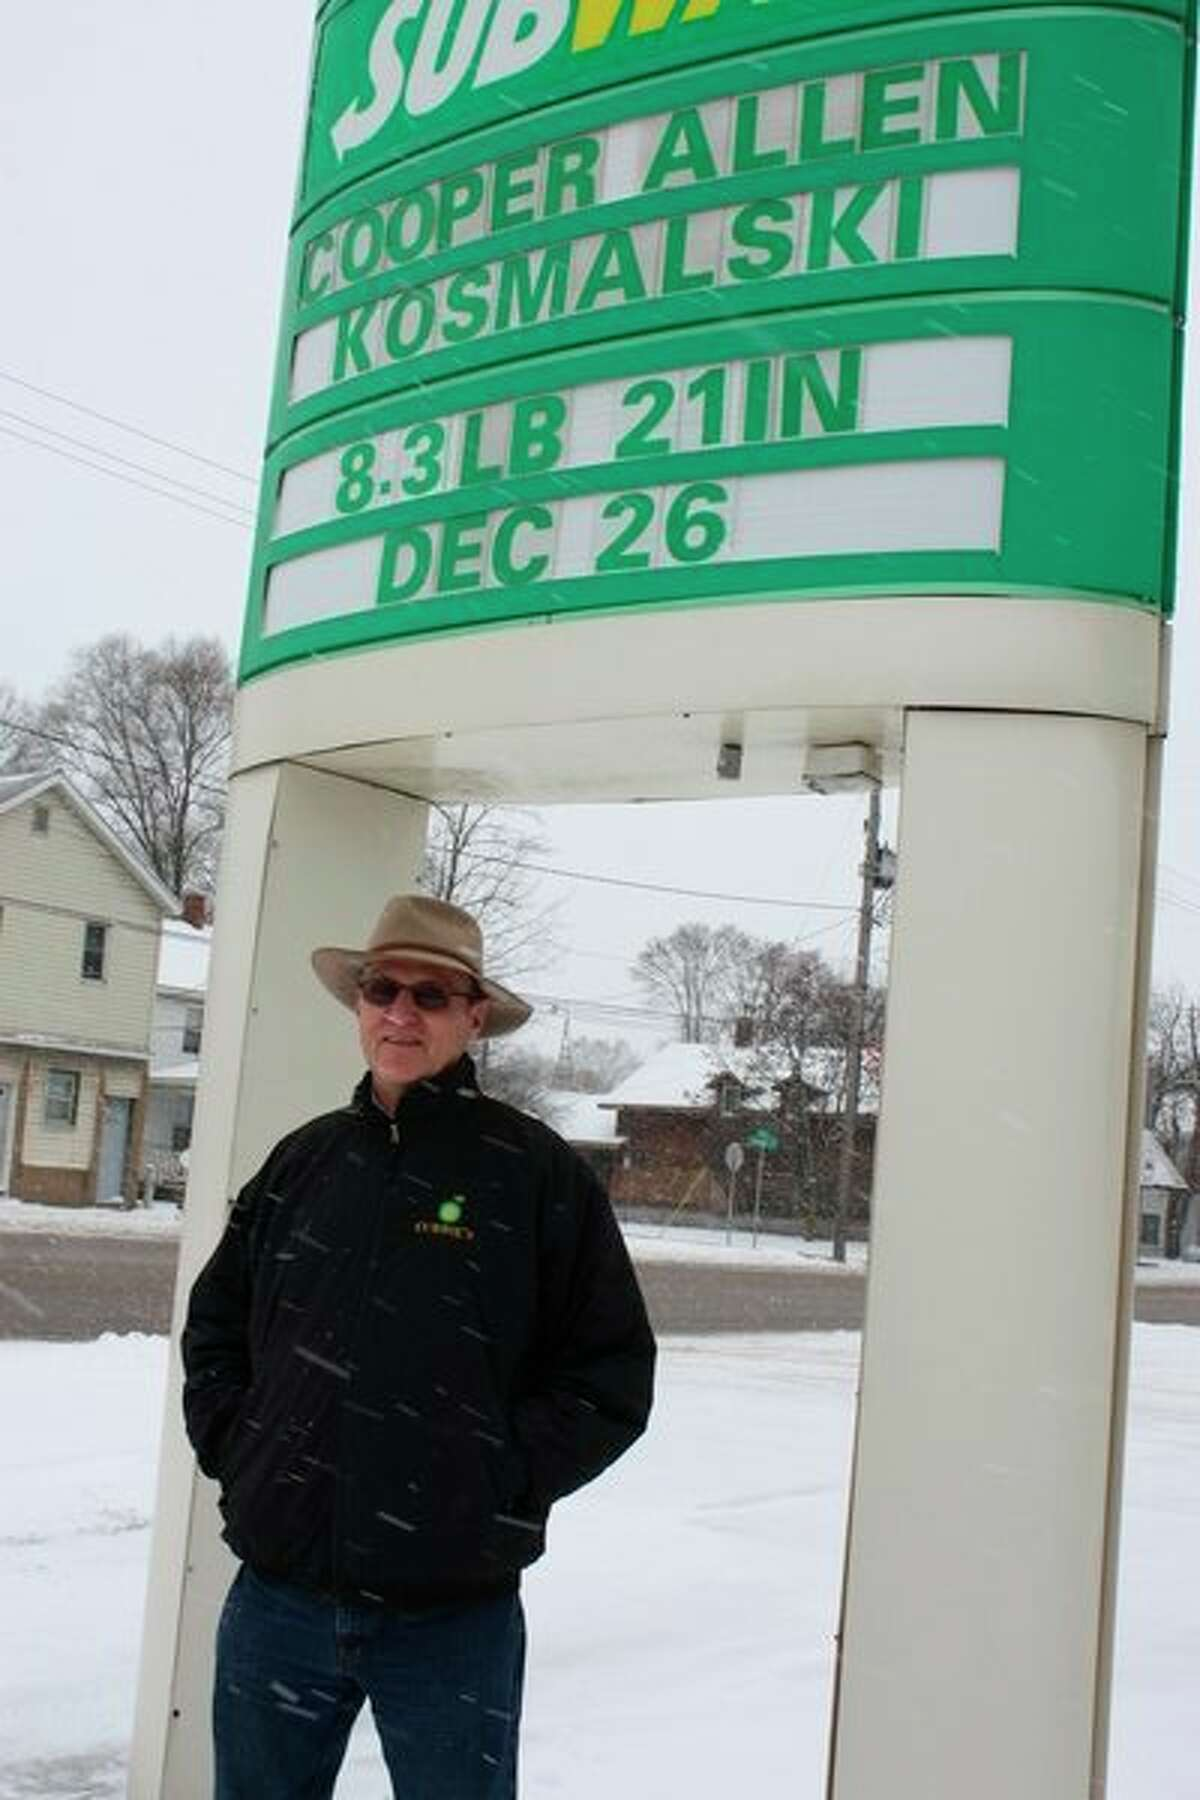 Pat Currie stands underneath the marquee of the BP gas station he owns, 620 Maple St., in Big Rapids. For more than 20 years, Currie has used the marquee to inform drivers and passersby of local news, such as births, deaths, anniversaries and more. (Pioneer photo/Tim Rath)